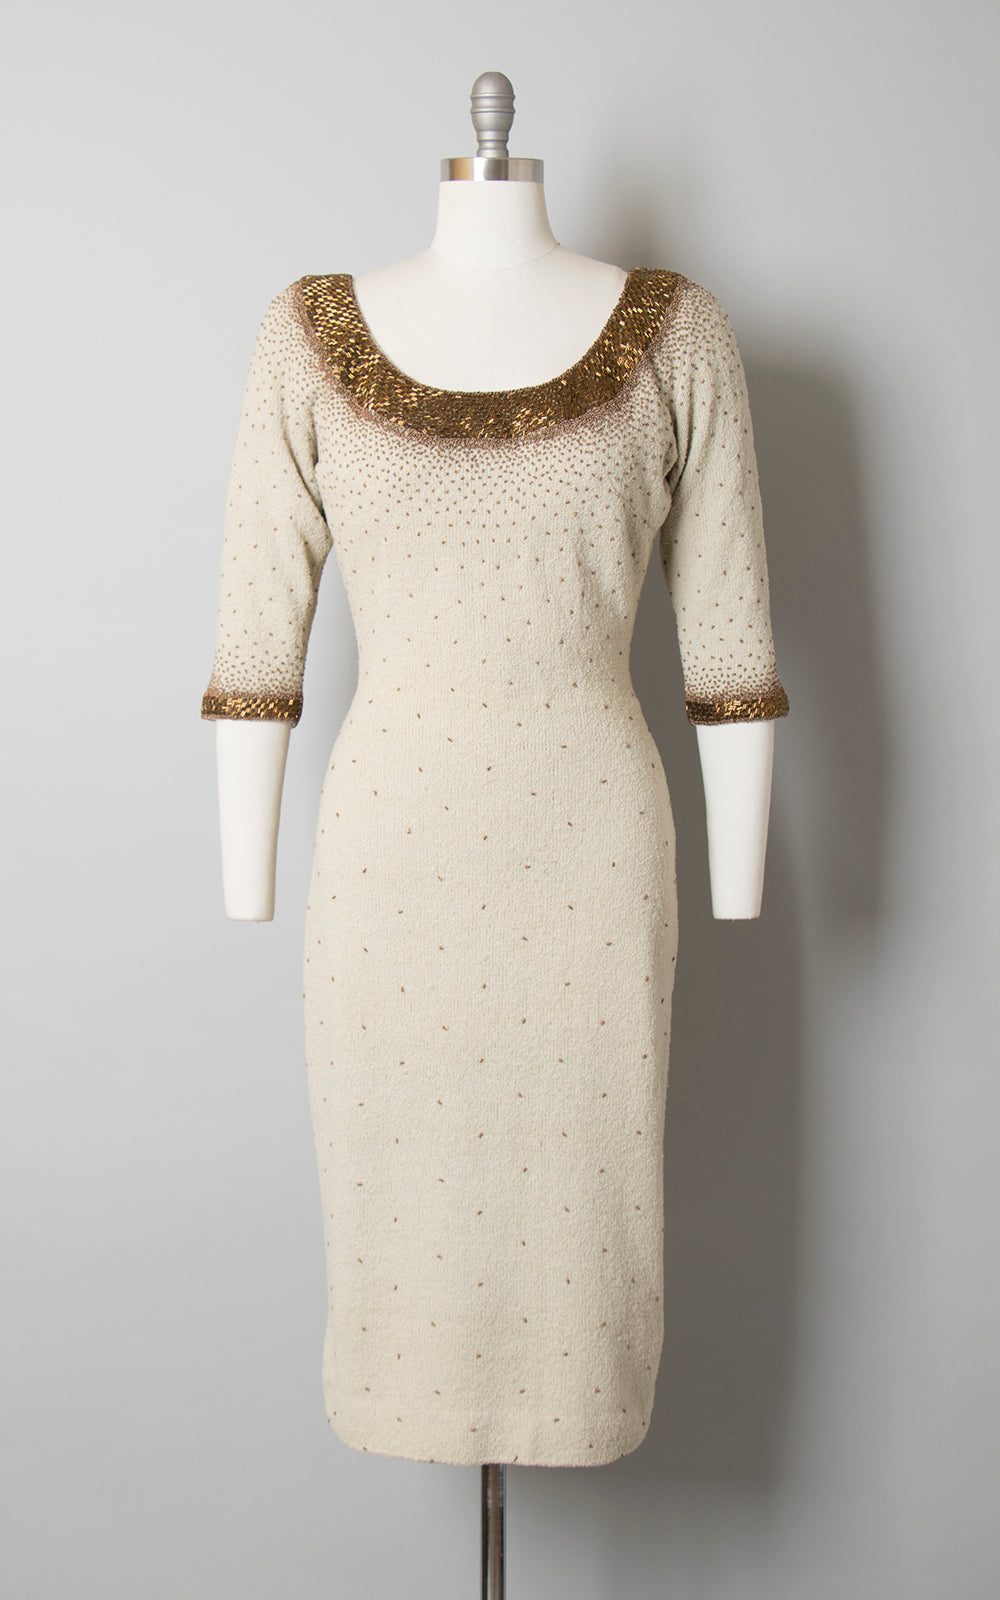 1950s Gene Shelly Beaded Knit Wool Dress | medium/large